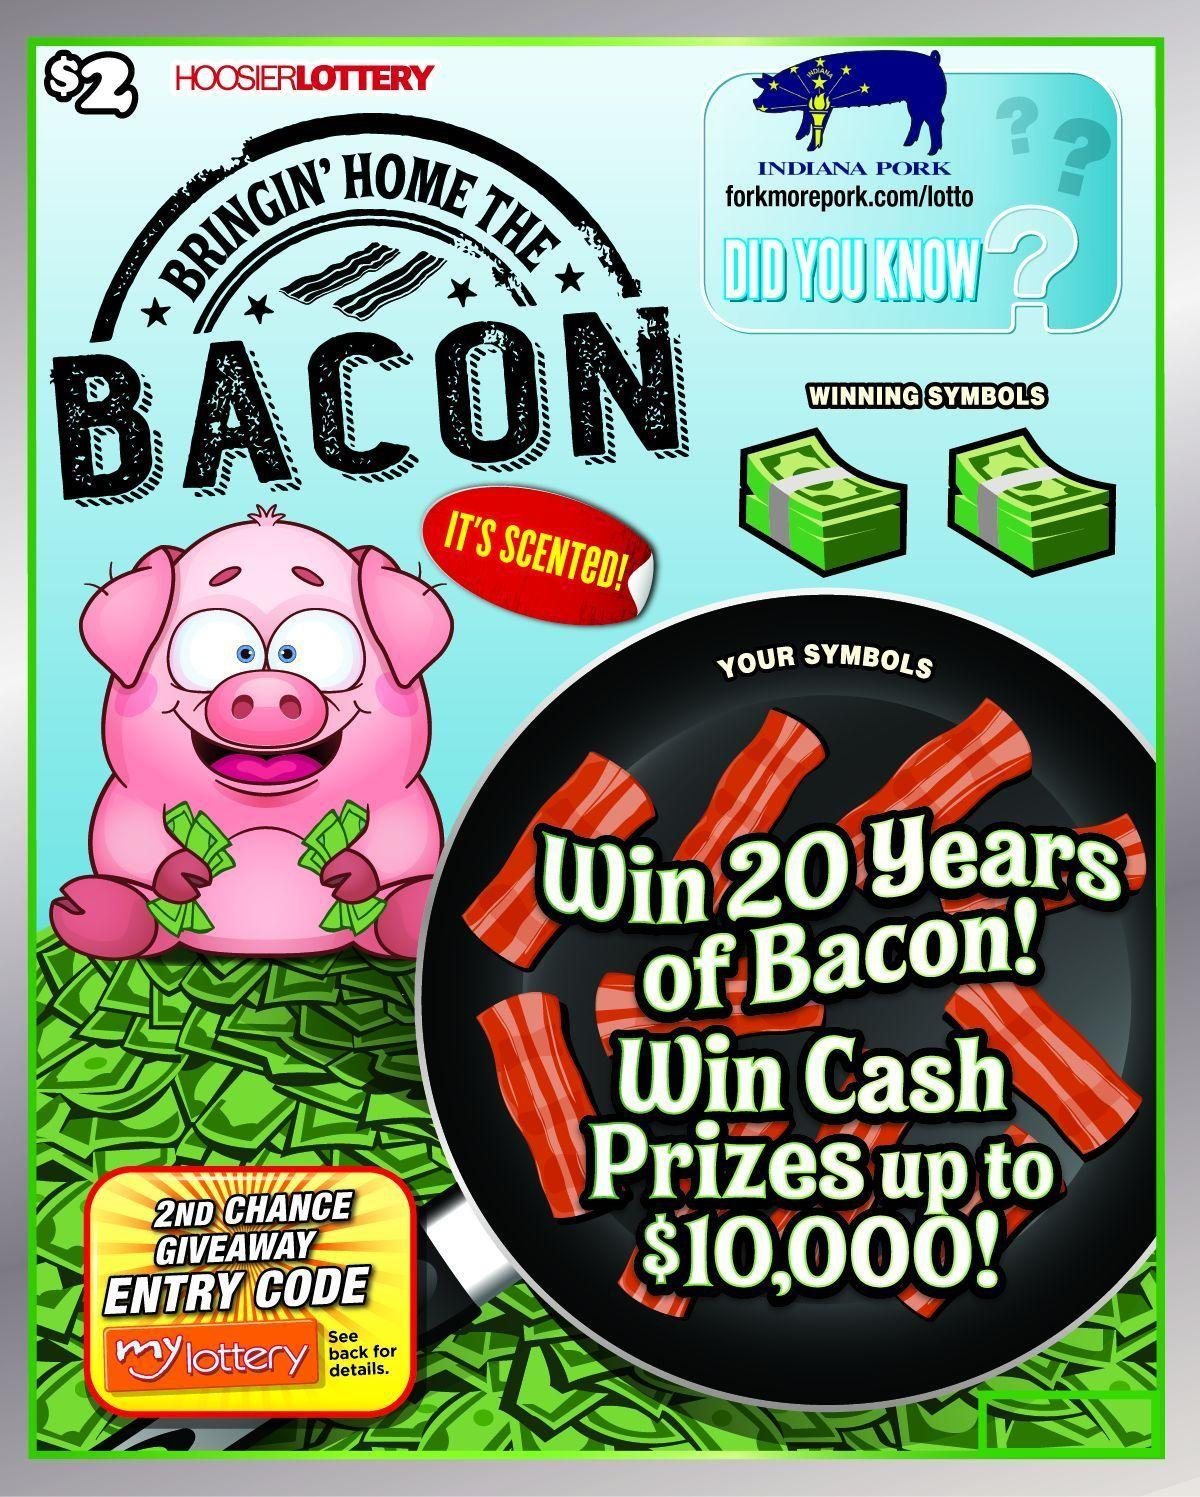 Hoosier Lottery debuts new bacon-scented lottery tickets